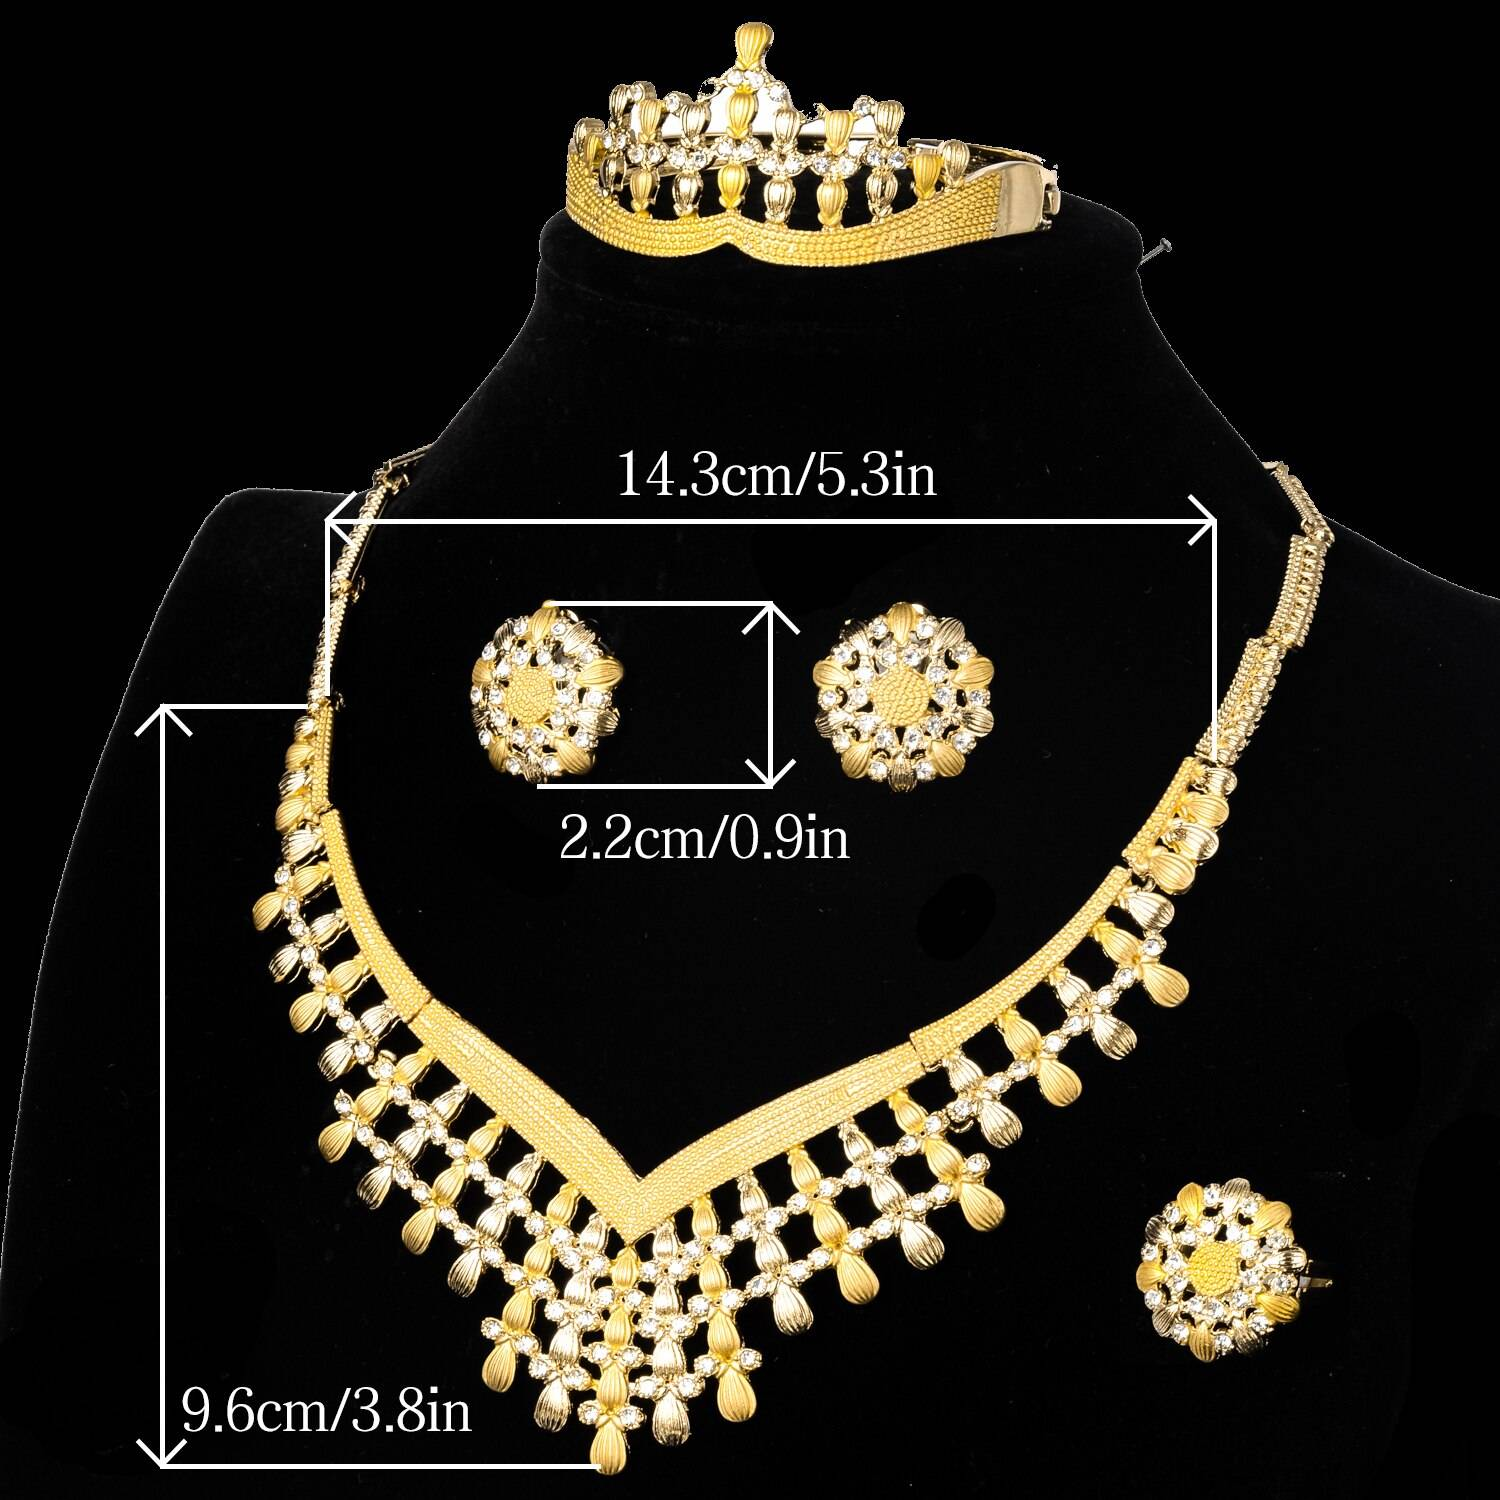 Diana baby Jewelry Sets Bohemia Zircon Bridal Wedding Earrings Necklace Bracelet Ring For Women Lady Cute Romantic Party Gift Wedding Jewellery Set 8d255f28538fbae46aeae7: Jewelry Sets